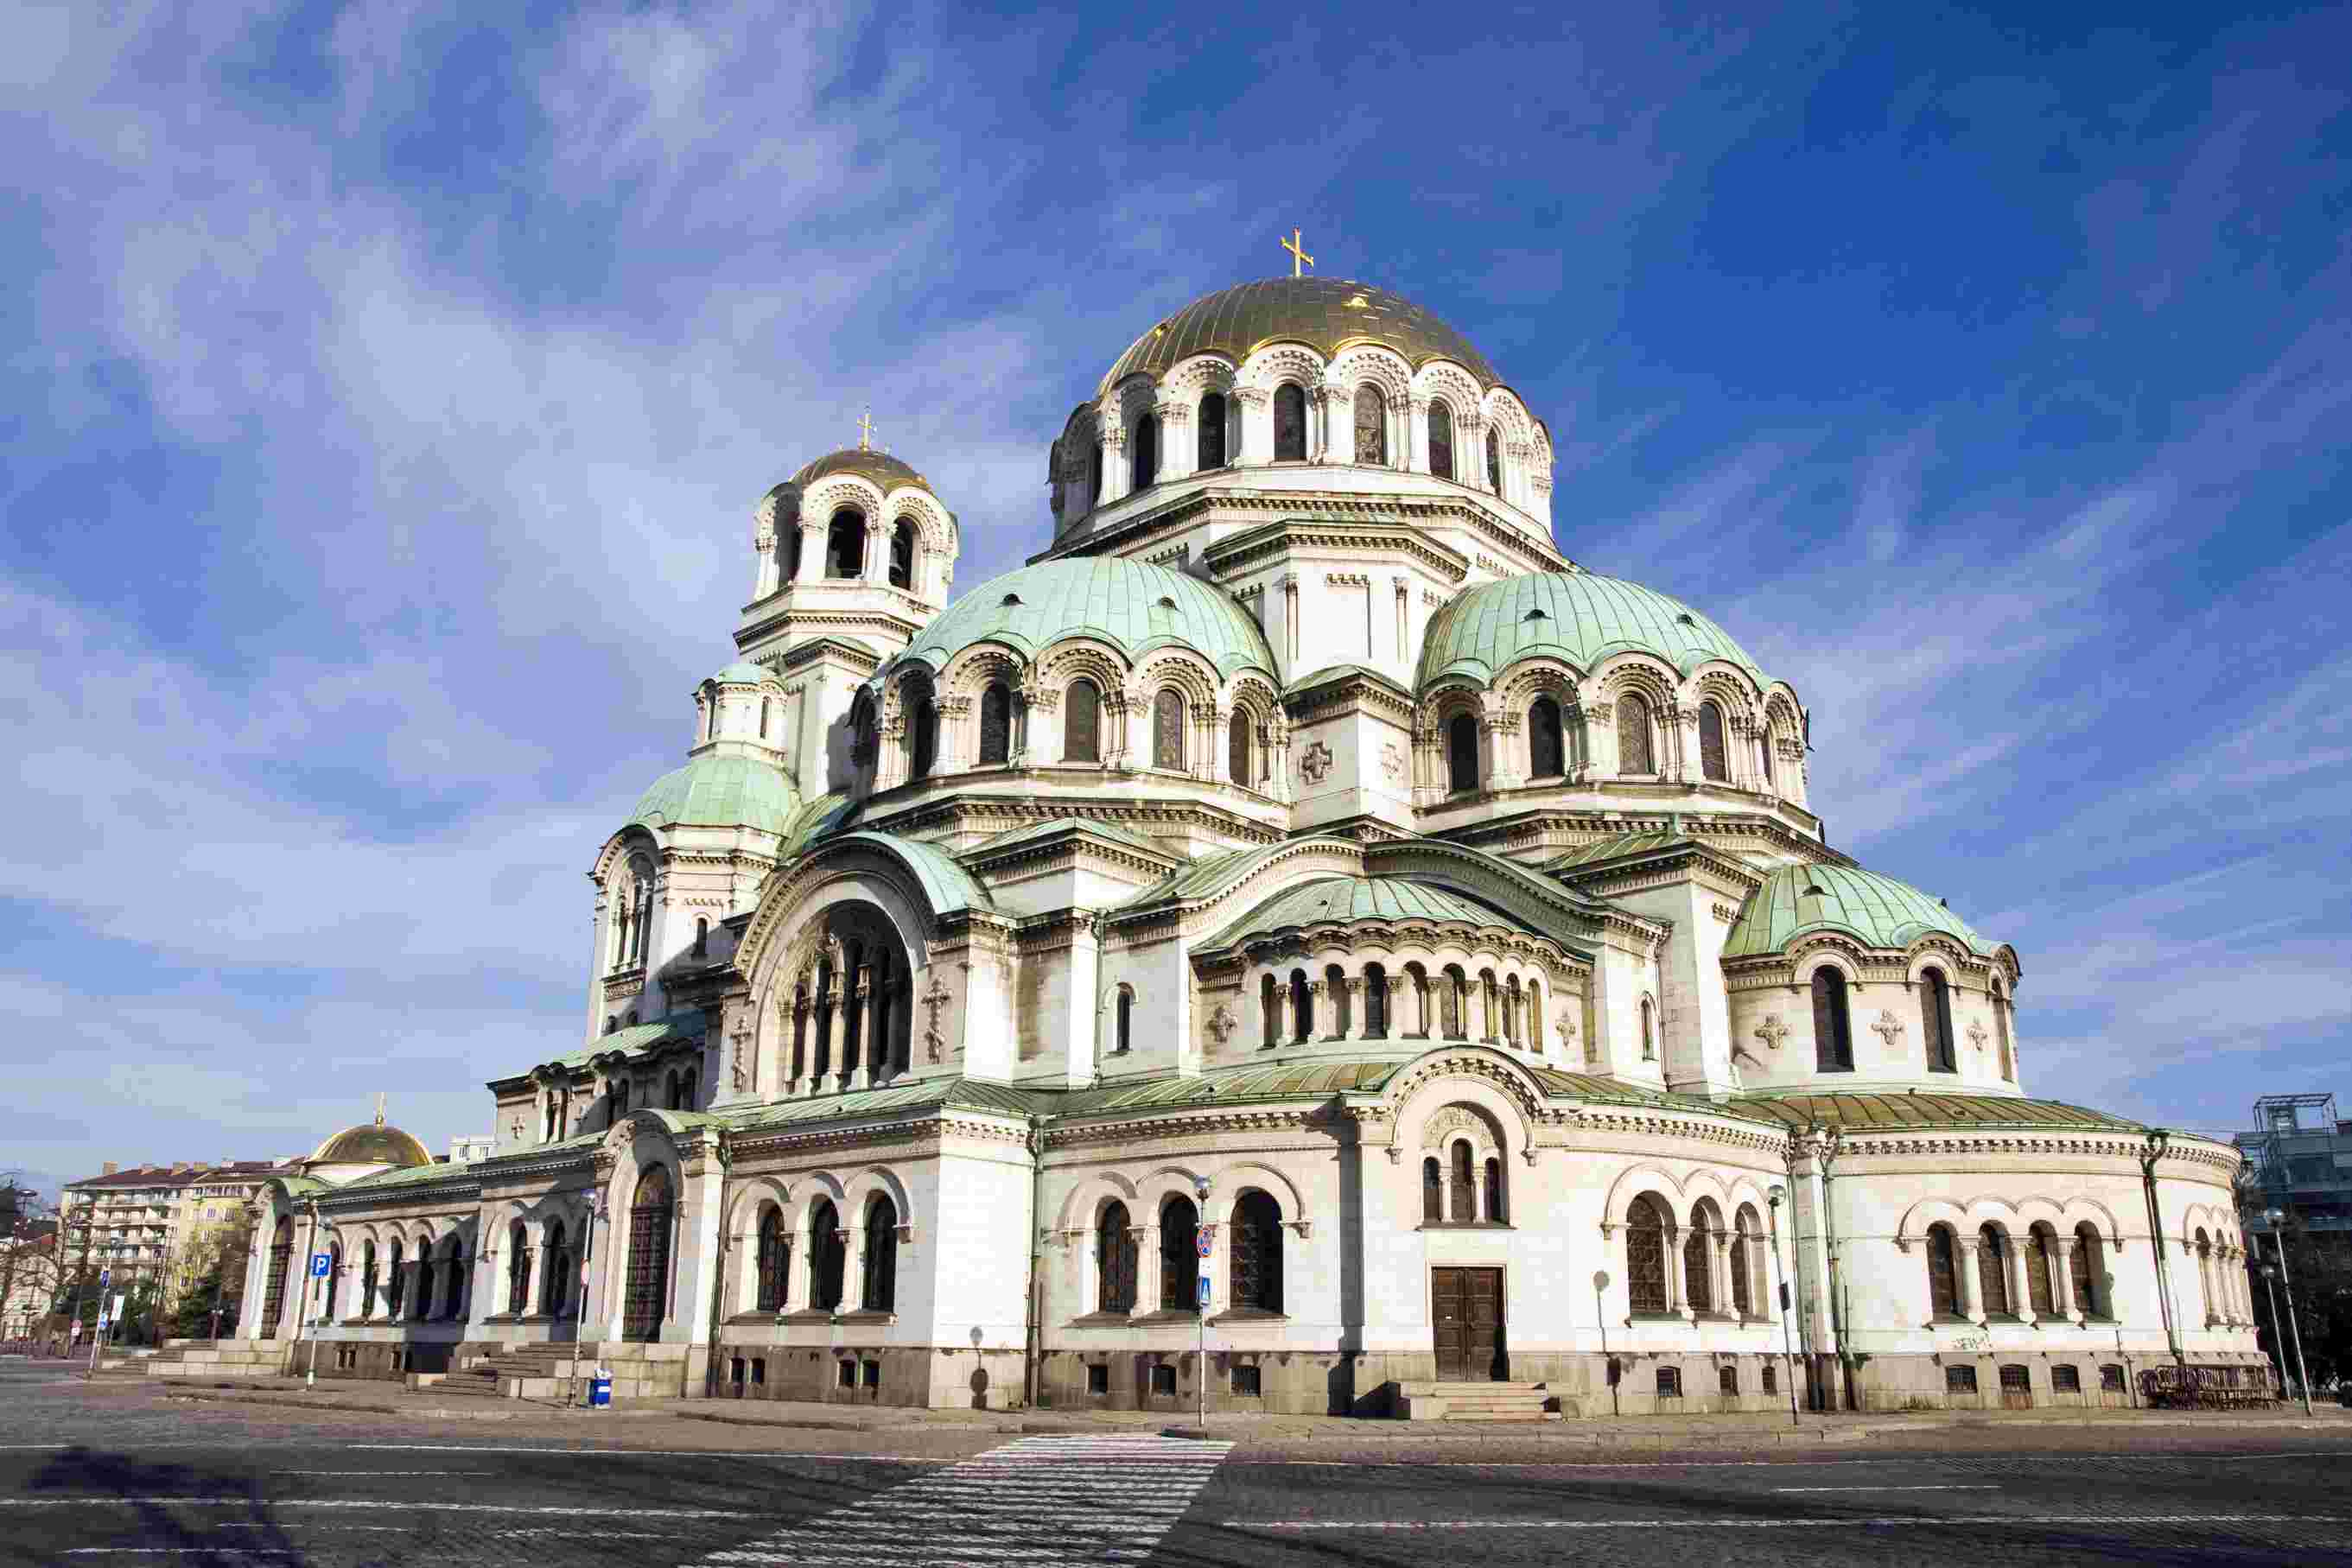 sofia bulgaria dating sites Sofia is bulgaria's capital the eastern gate from the days when sofia was serdika and sredets, dating from the 2nd the unesco world heritage sites.